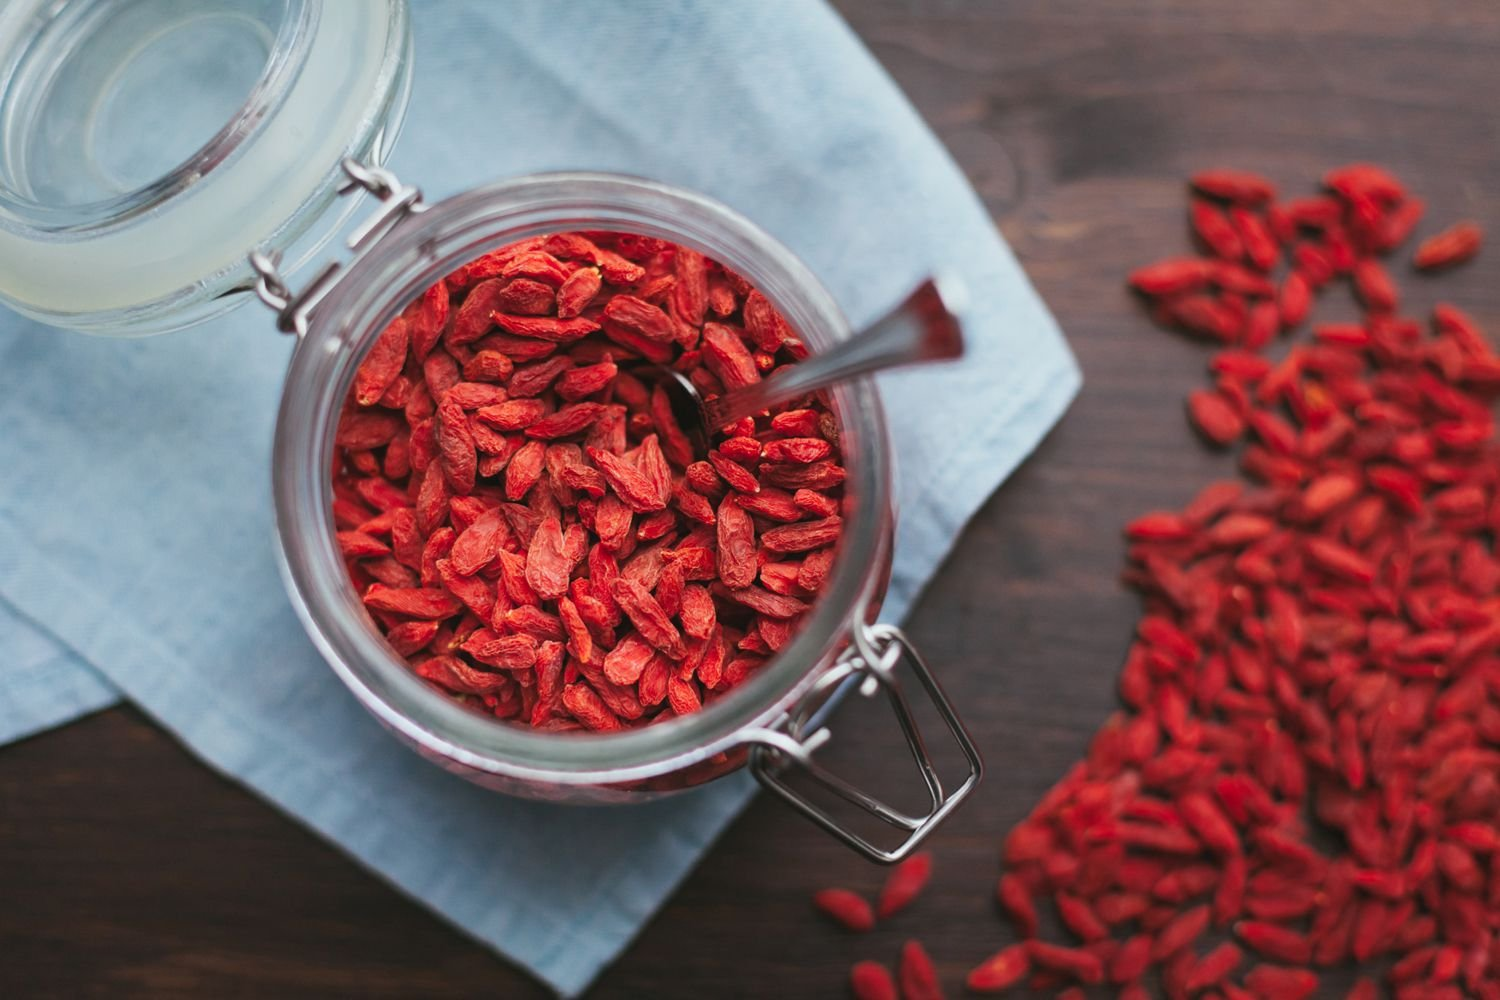 16 Tips for Safe Storage of Dehydrated Foods